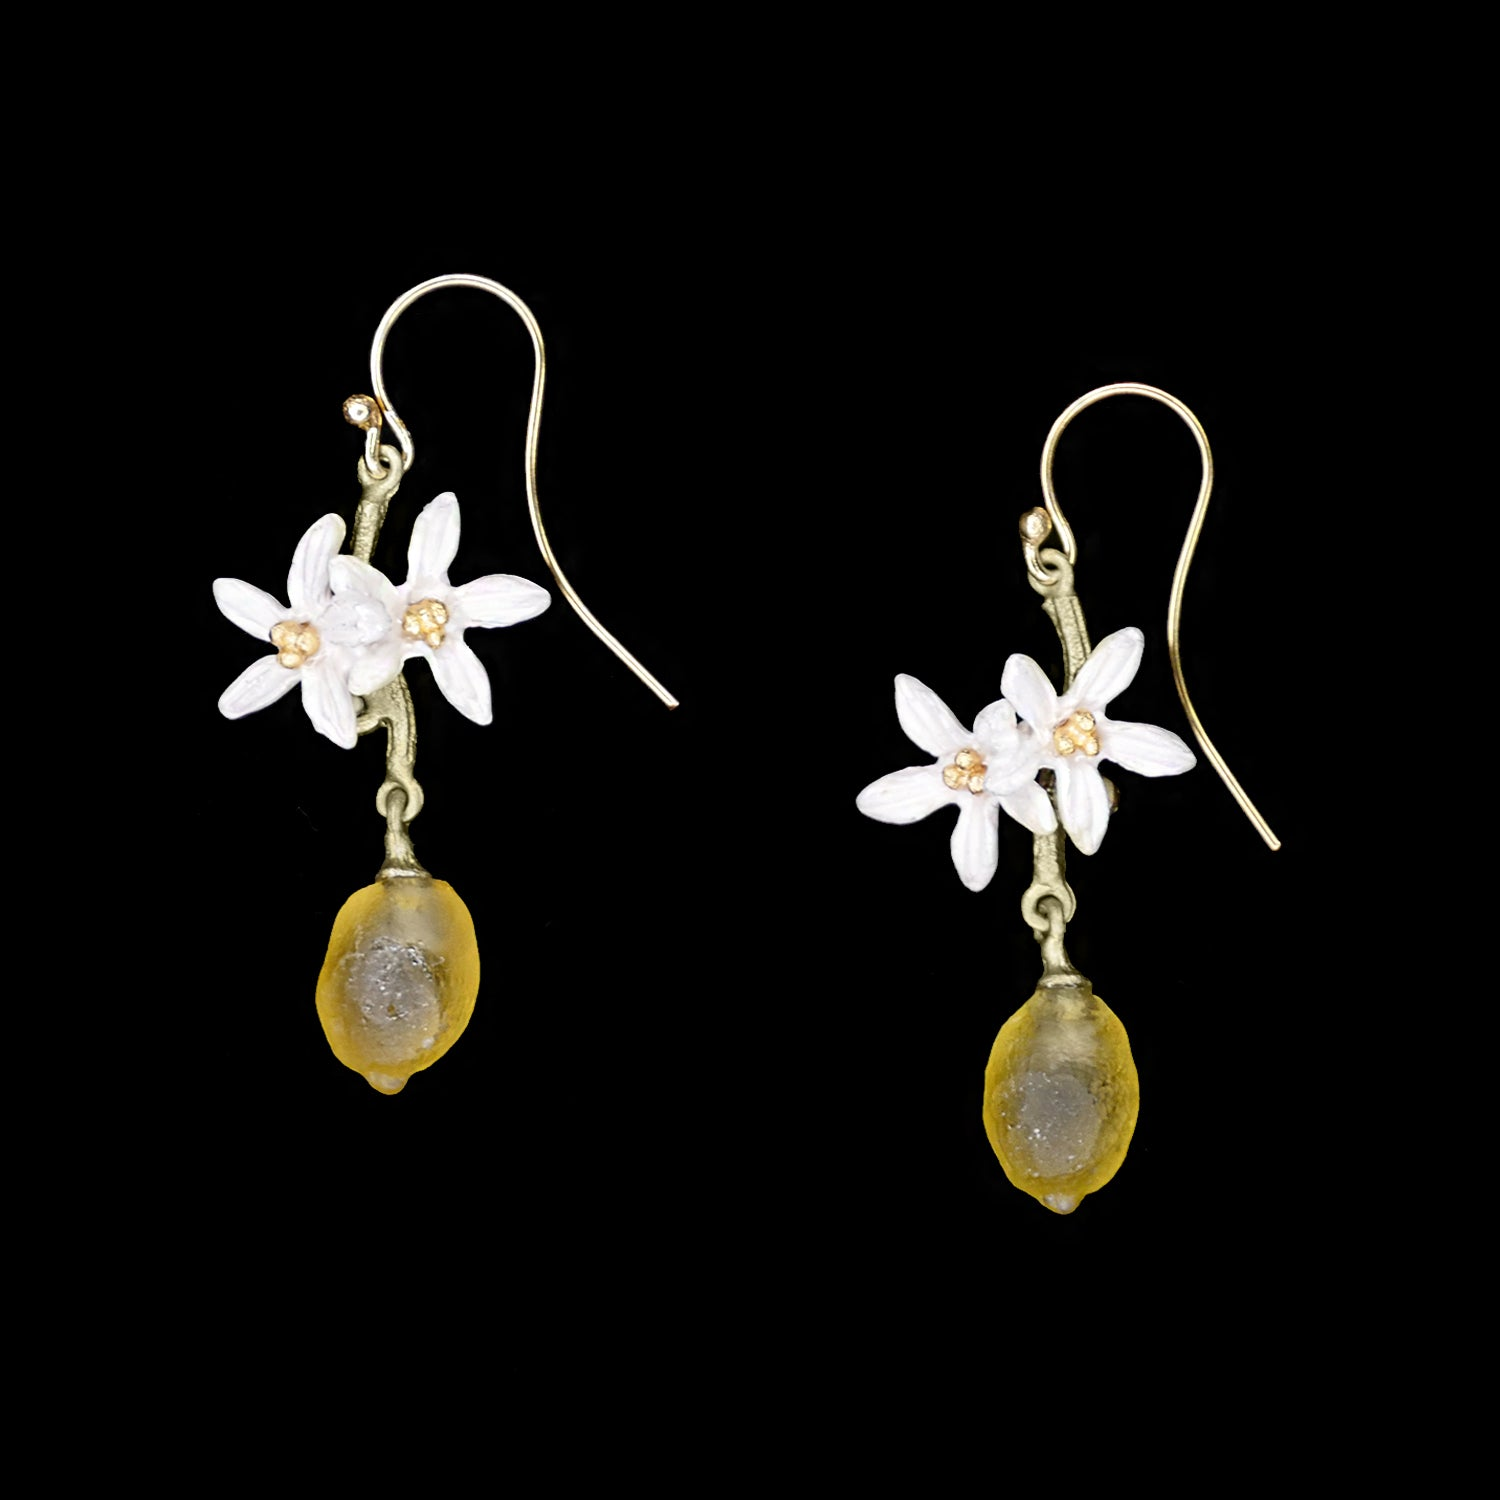 Lemon Drop Earrings - Flower Wire